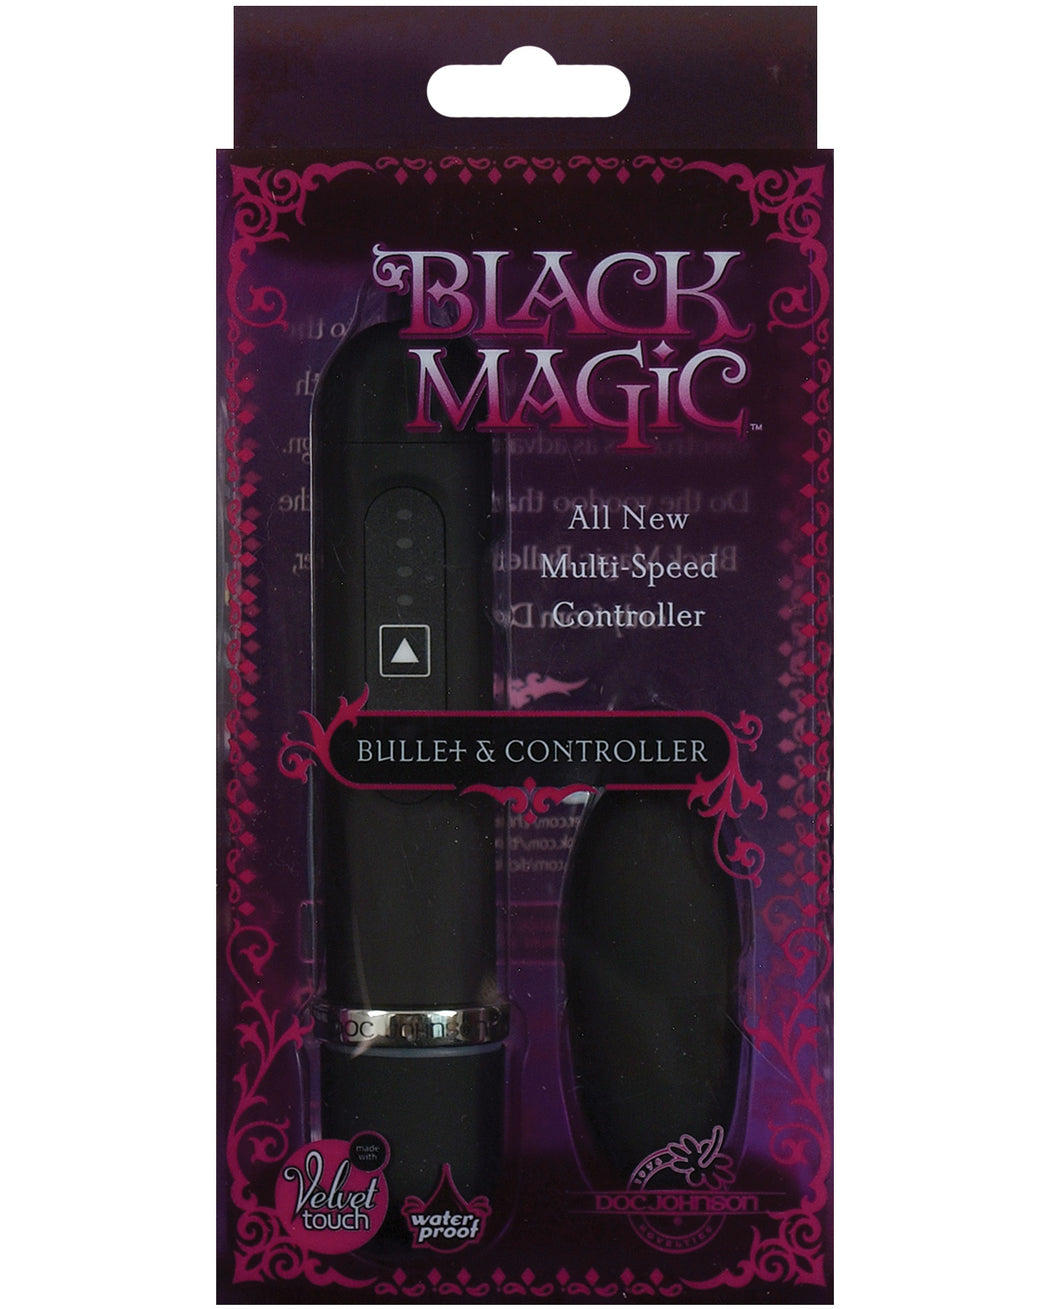 Black Magic Bullet & Controller